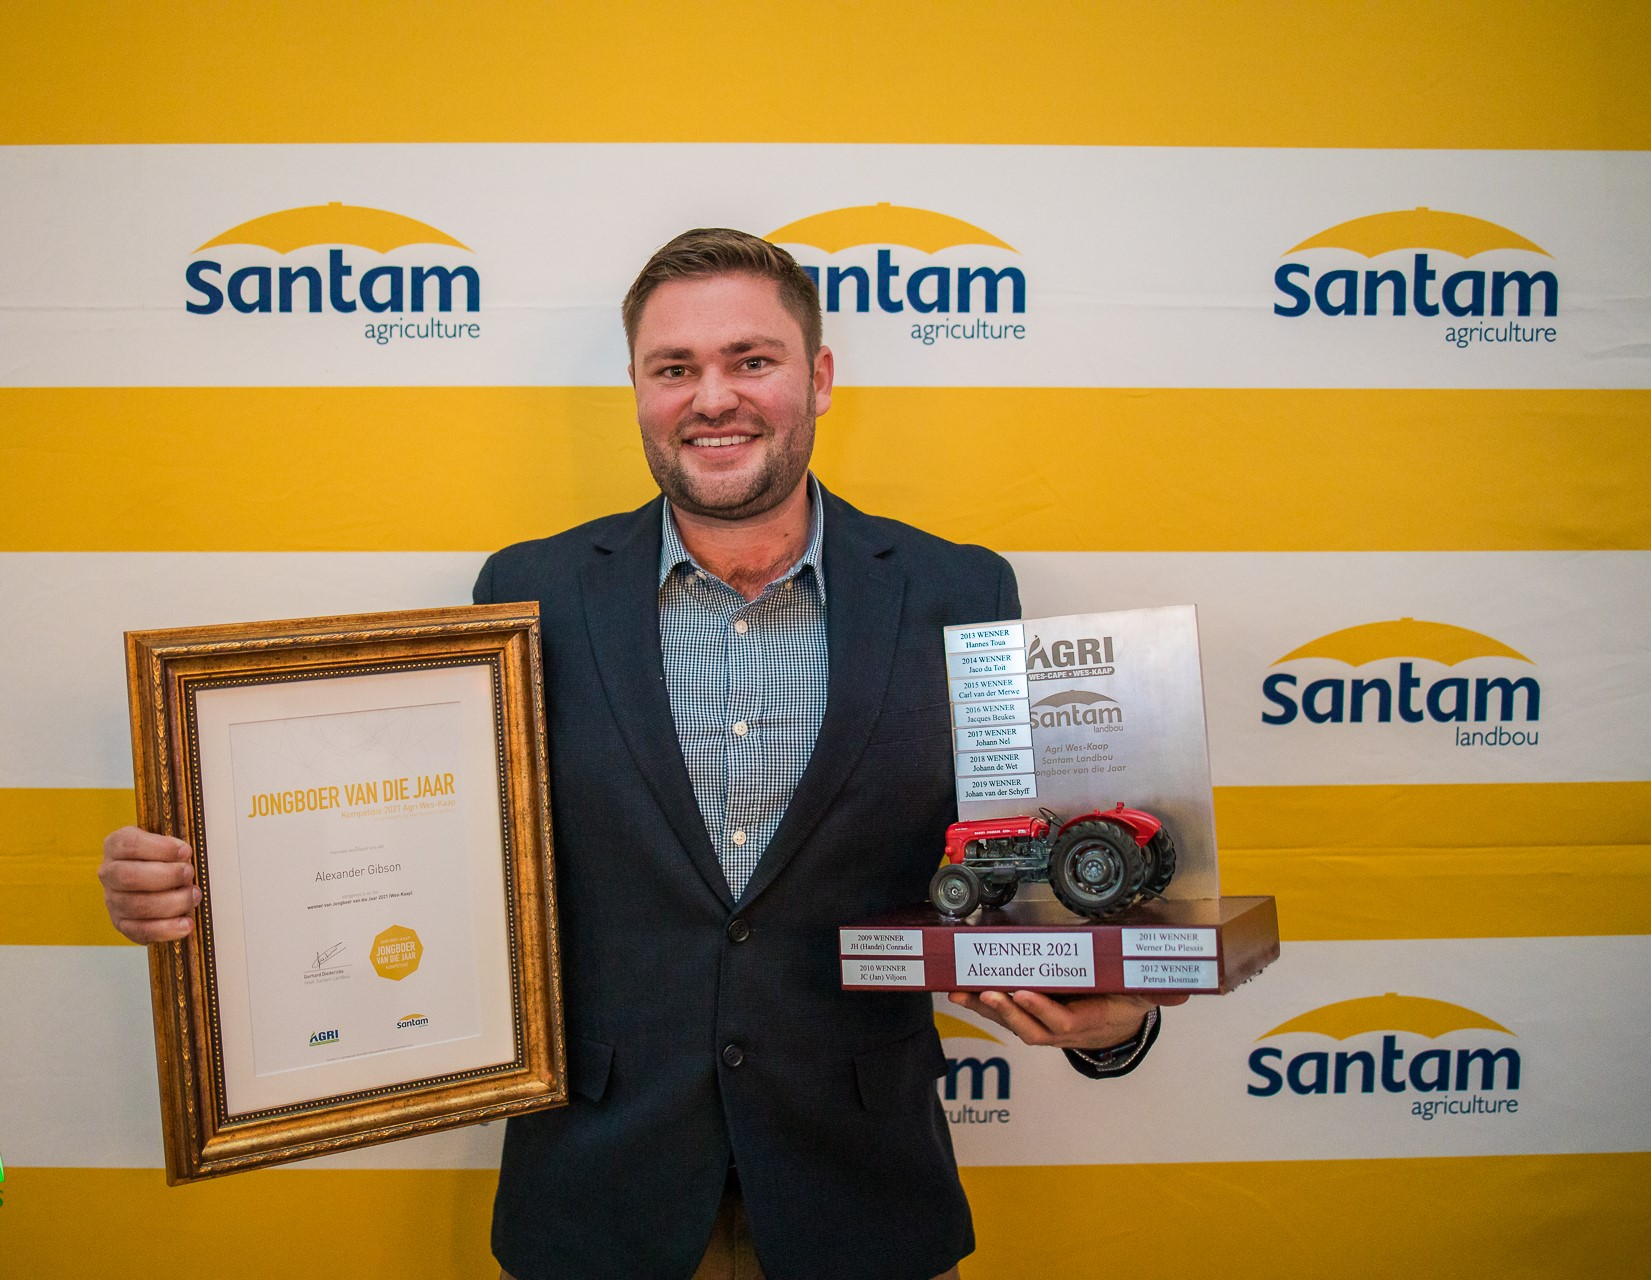 AGRICULTURAL YOUNG FARMER OF THE YEAR FOR 2021 ANNOUNCED